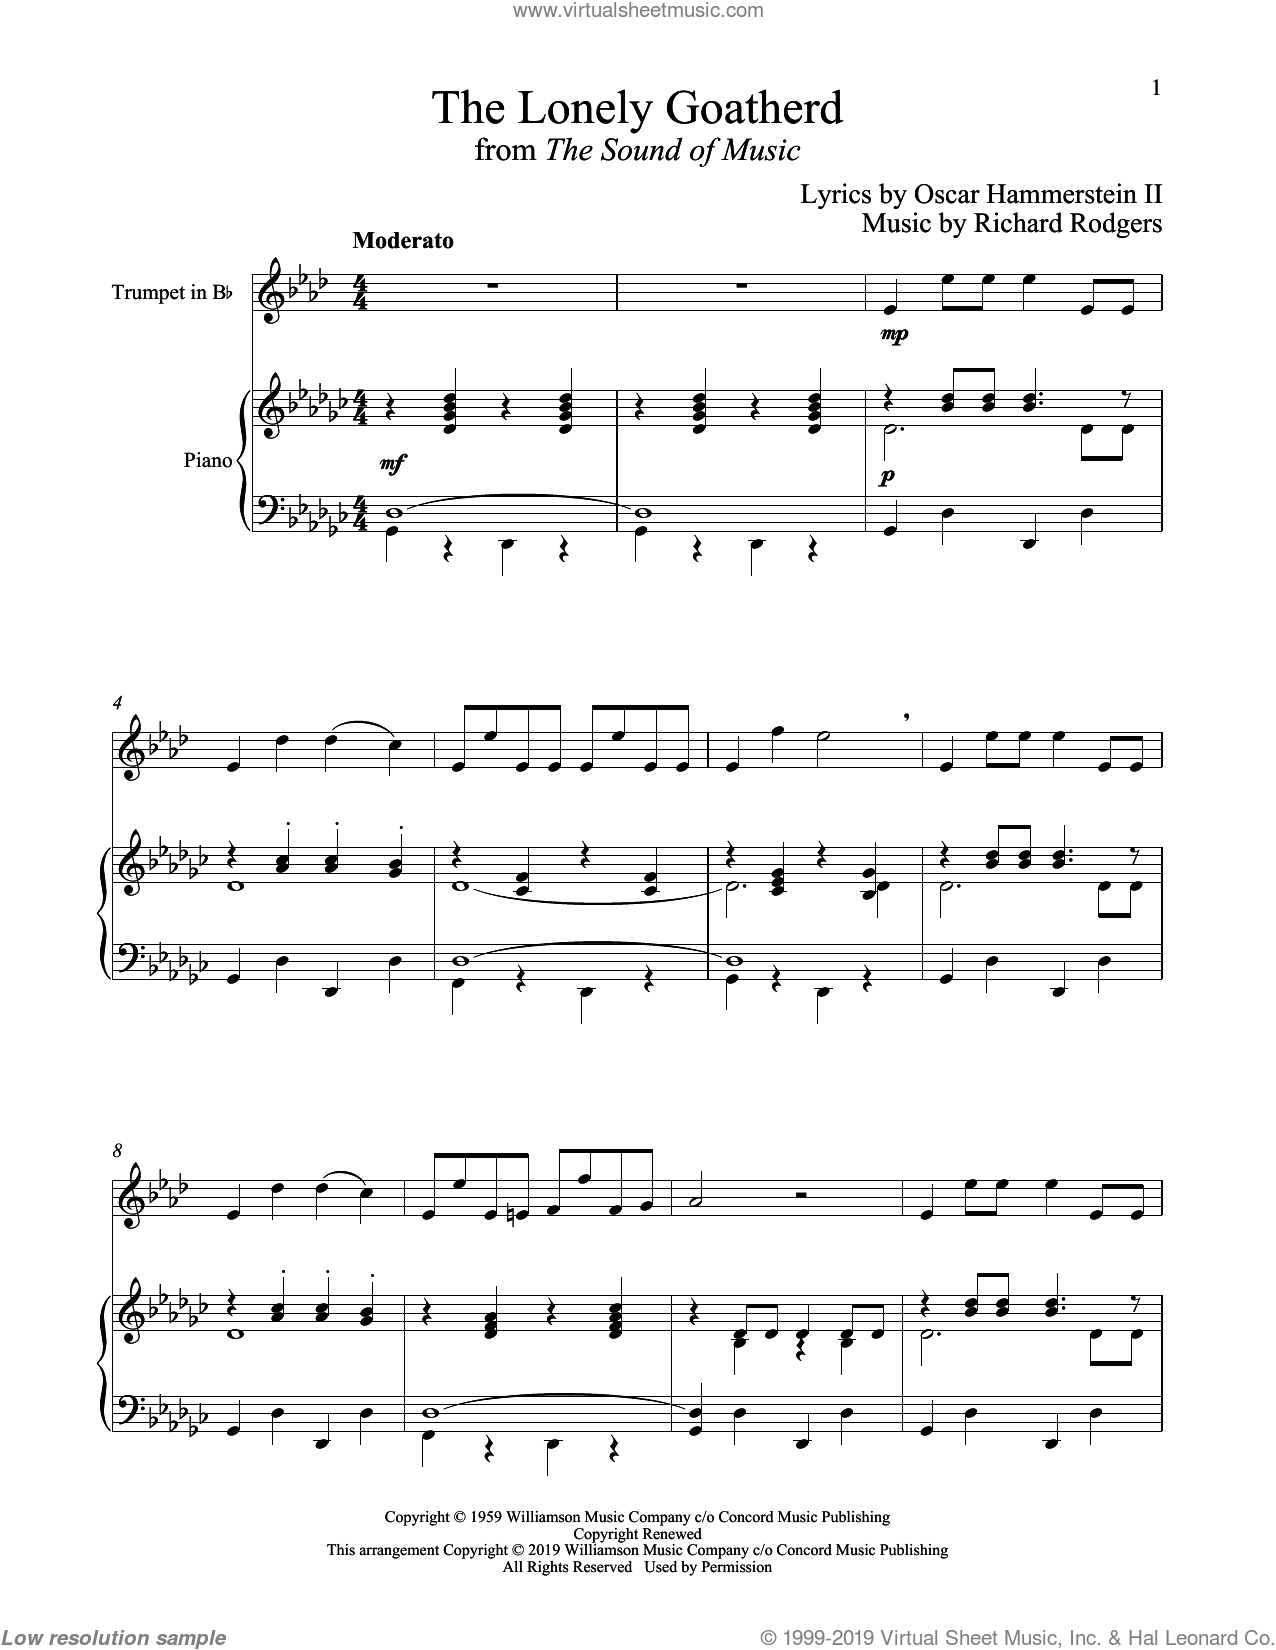 The Lonely Goatherd (from The Sound of Music) sheet music for trumpet and piano by Richard Rodgers, Oscar II Hammerstein and Rodgers & Hammerstein, intermediate skill level